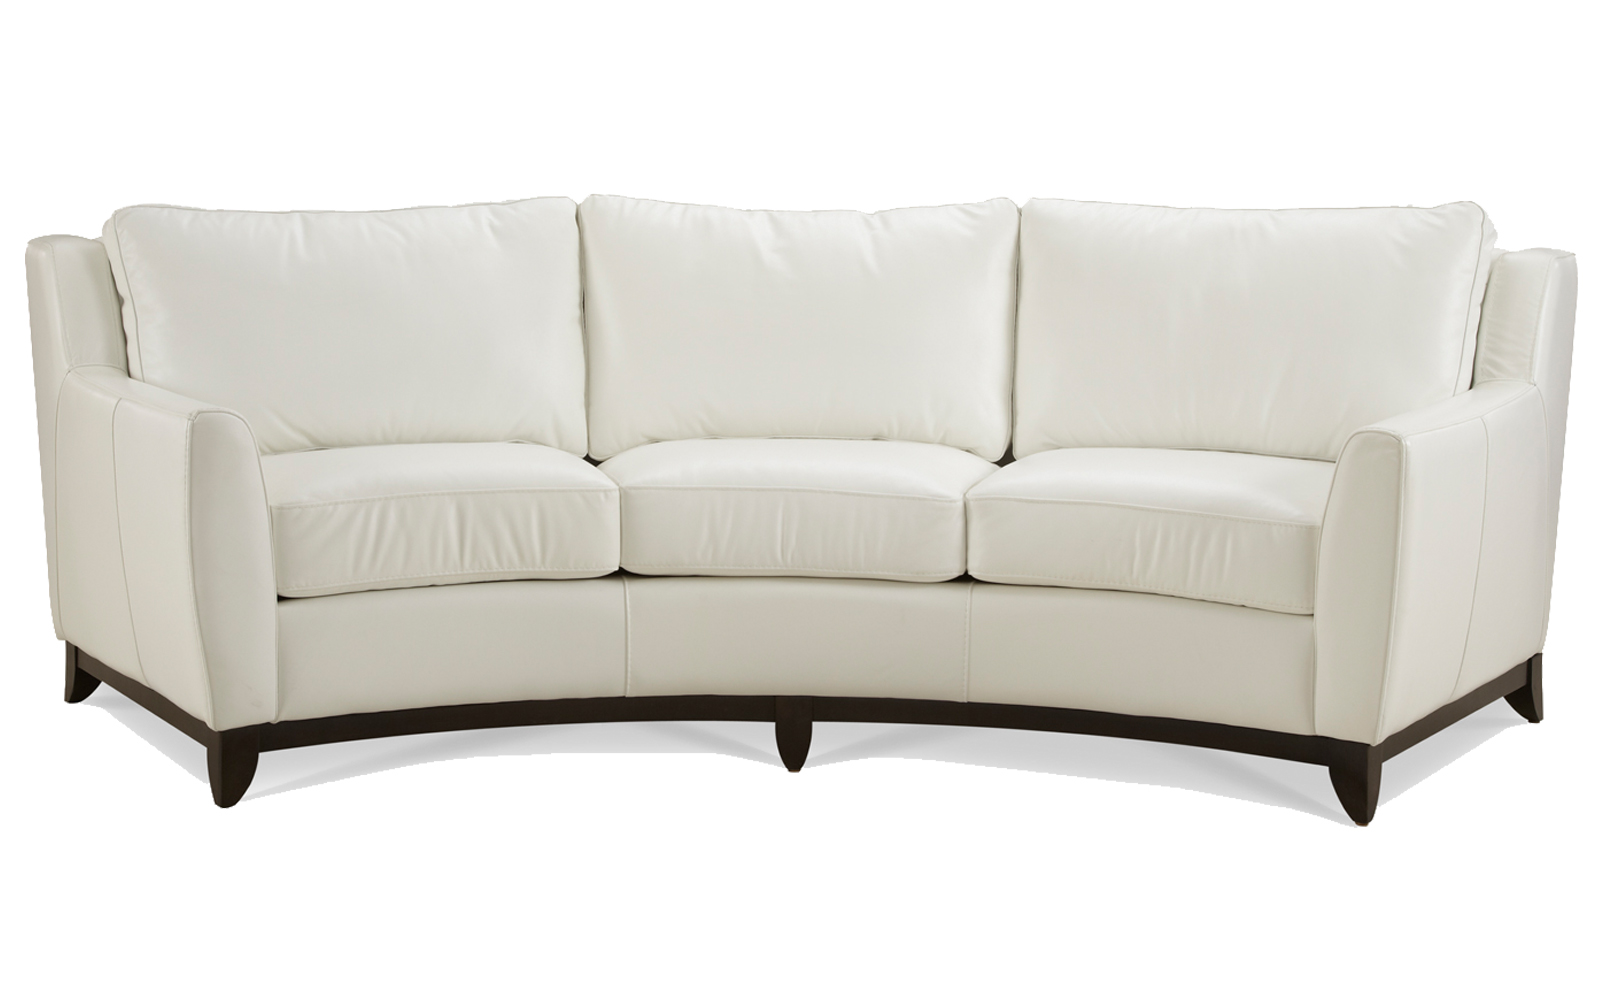 Pisa Conversation Sofa – Arizona Leather Interiors